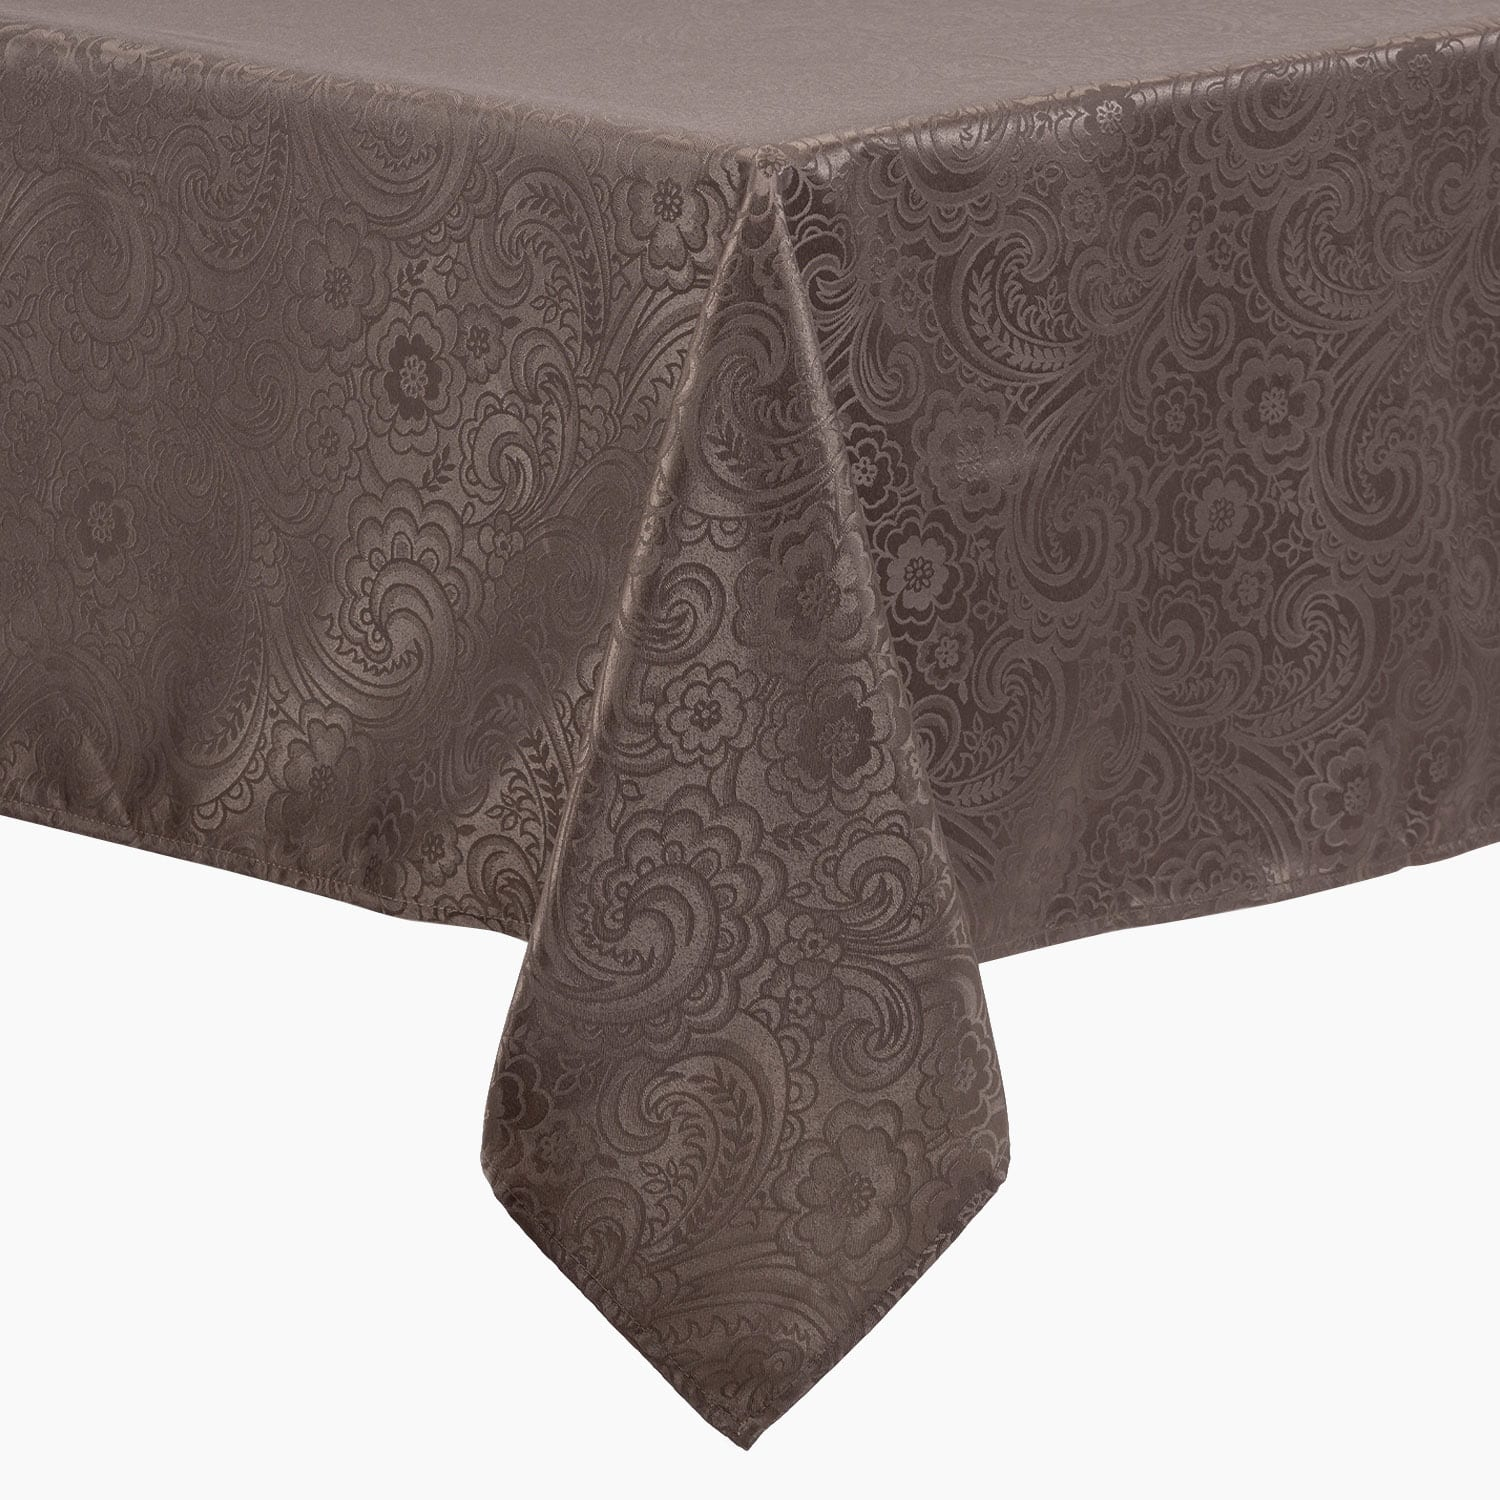 Mantel jacquard Color 1824